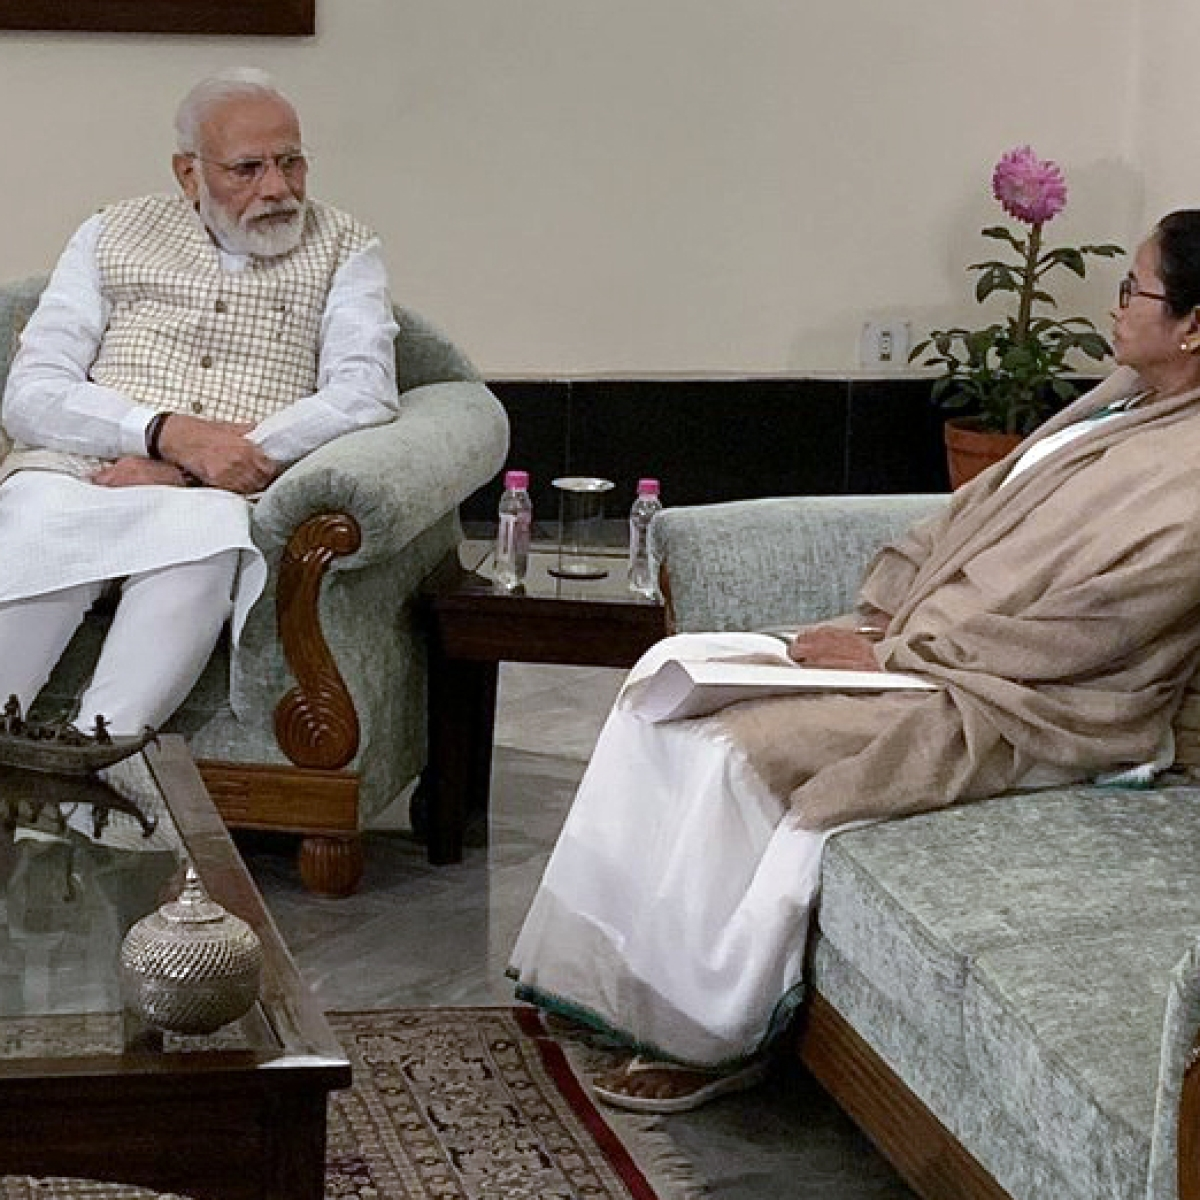 'That awkward moment when you meet ur ex': The best memes and jokes after Modi and Mamata's frosty meeting